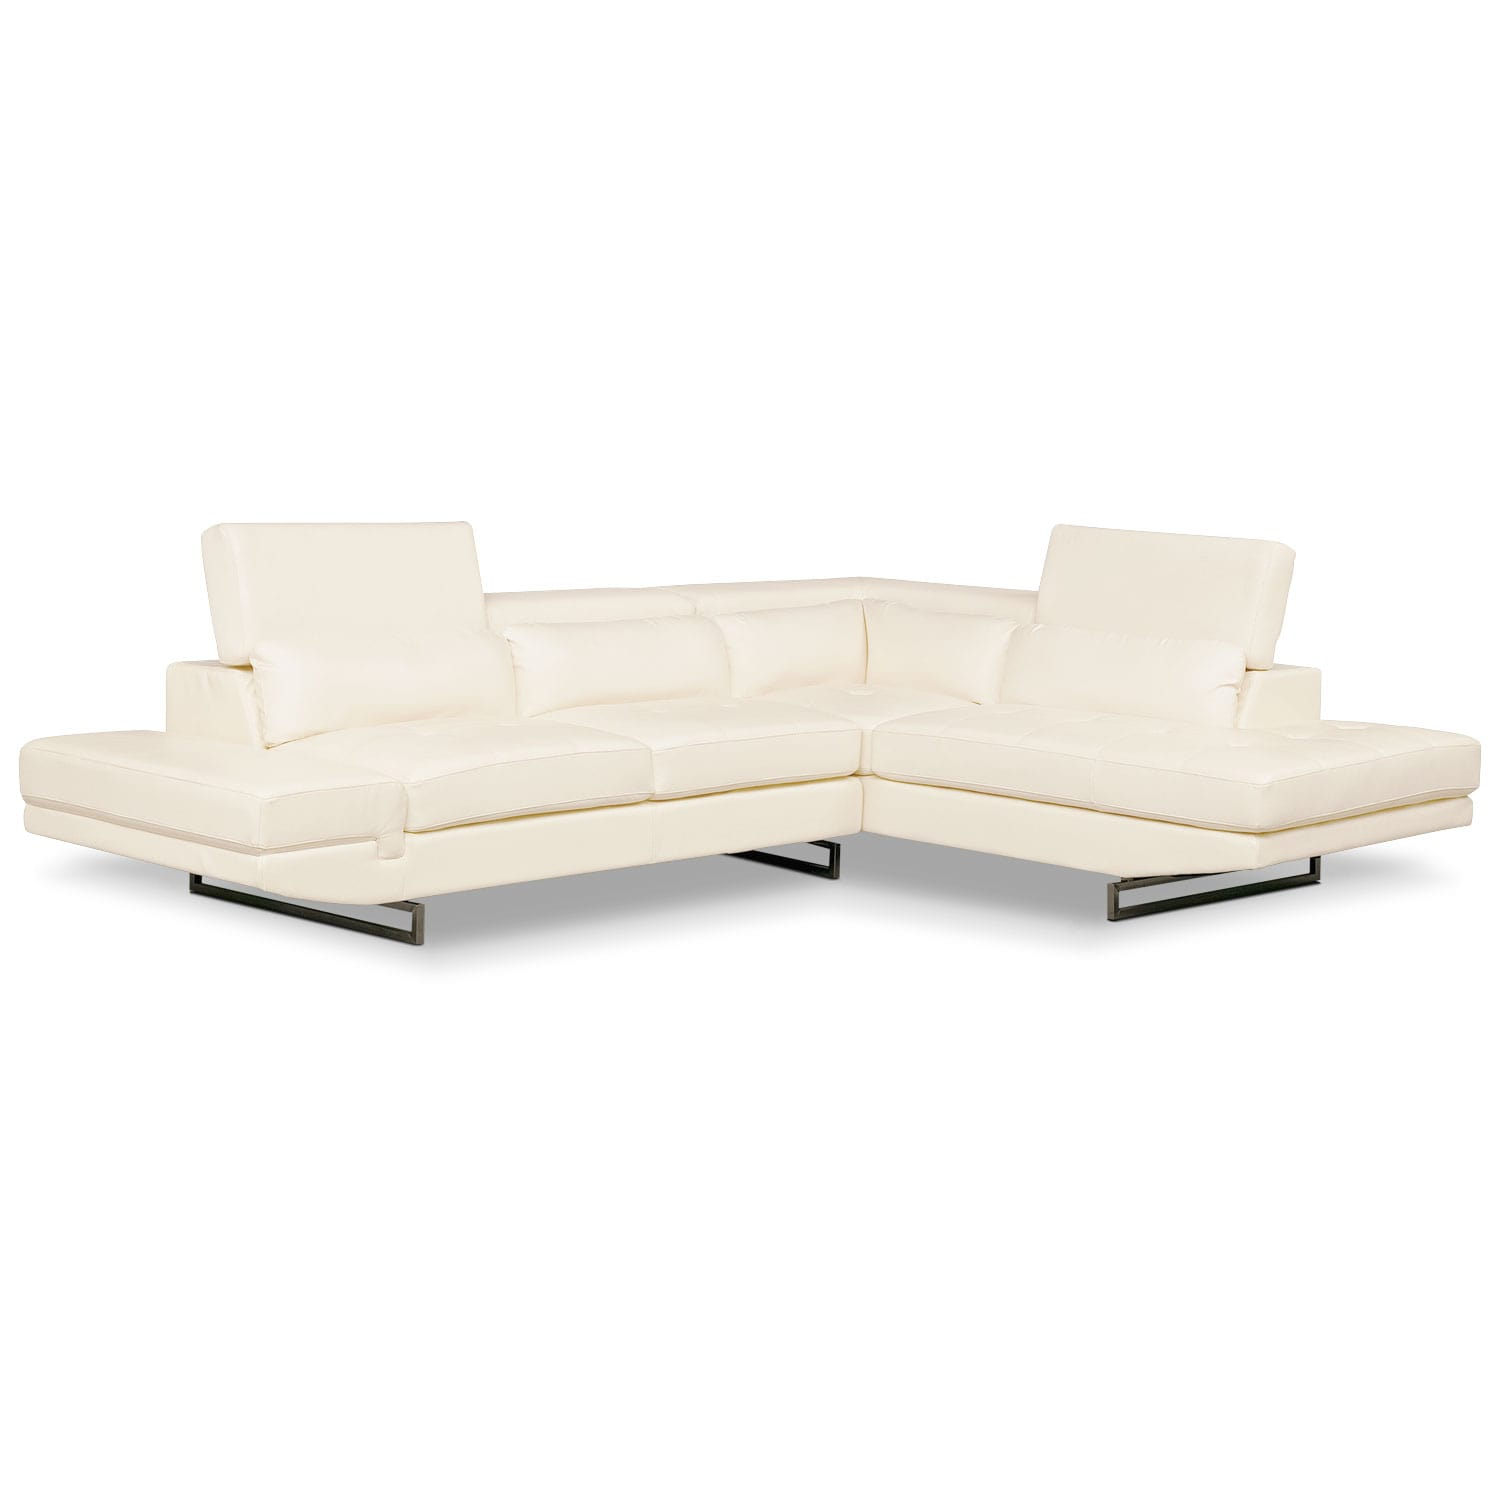 Torino 2 piece sectional with right facing chaise white for 2 piece sectional sofa with chaise